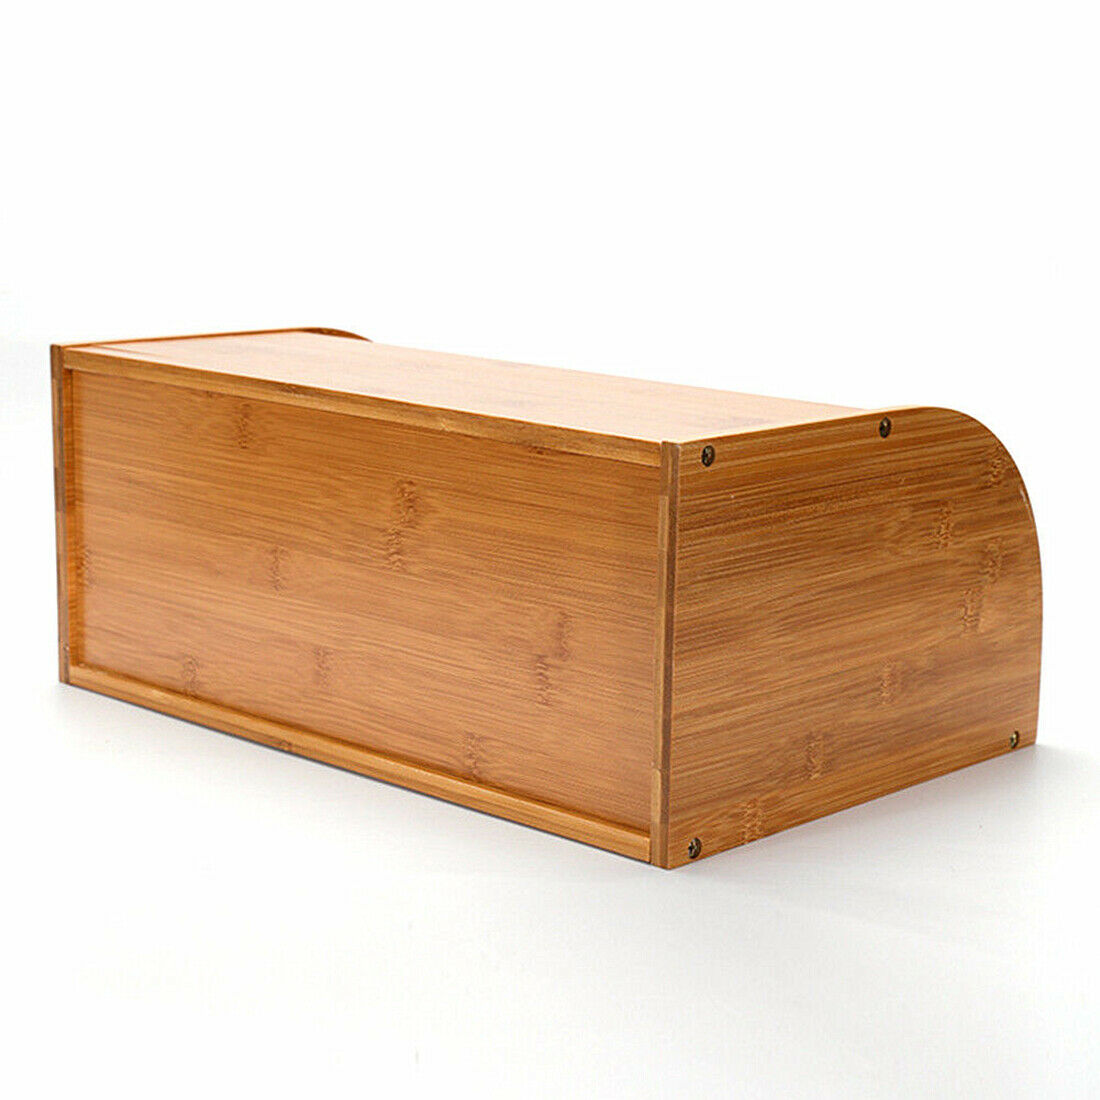 Roll Top Bamboo Wood Bread Box Loaf Container Kitchen Food Storage Bin Large US 8